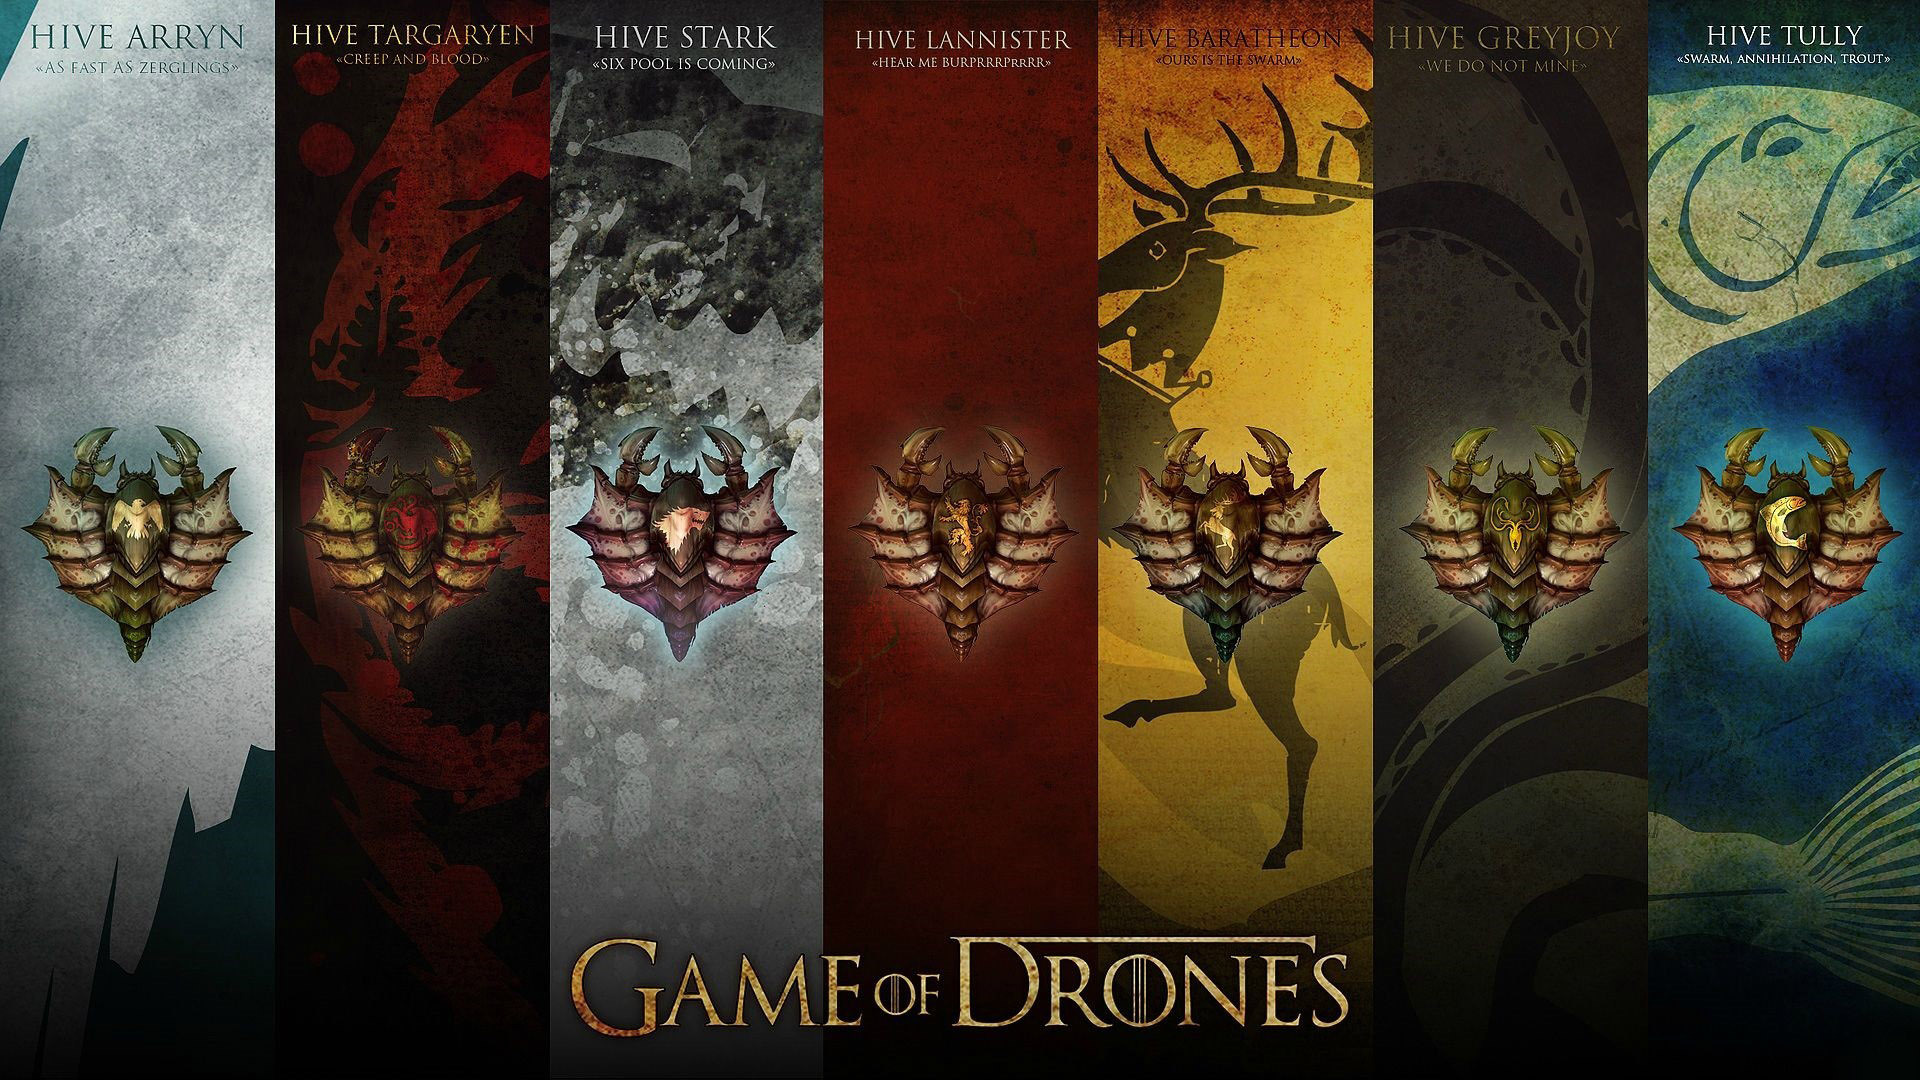 StarCraft Game of Thrones crossover